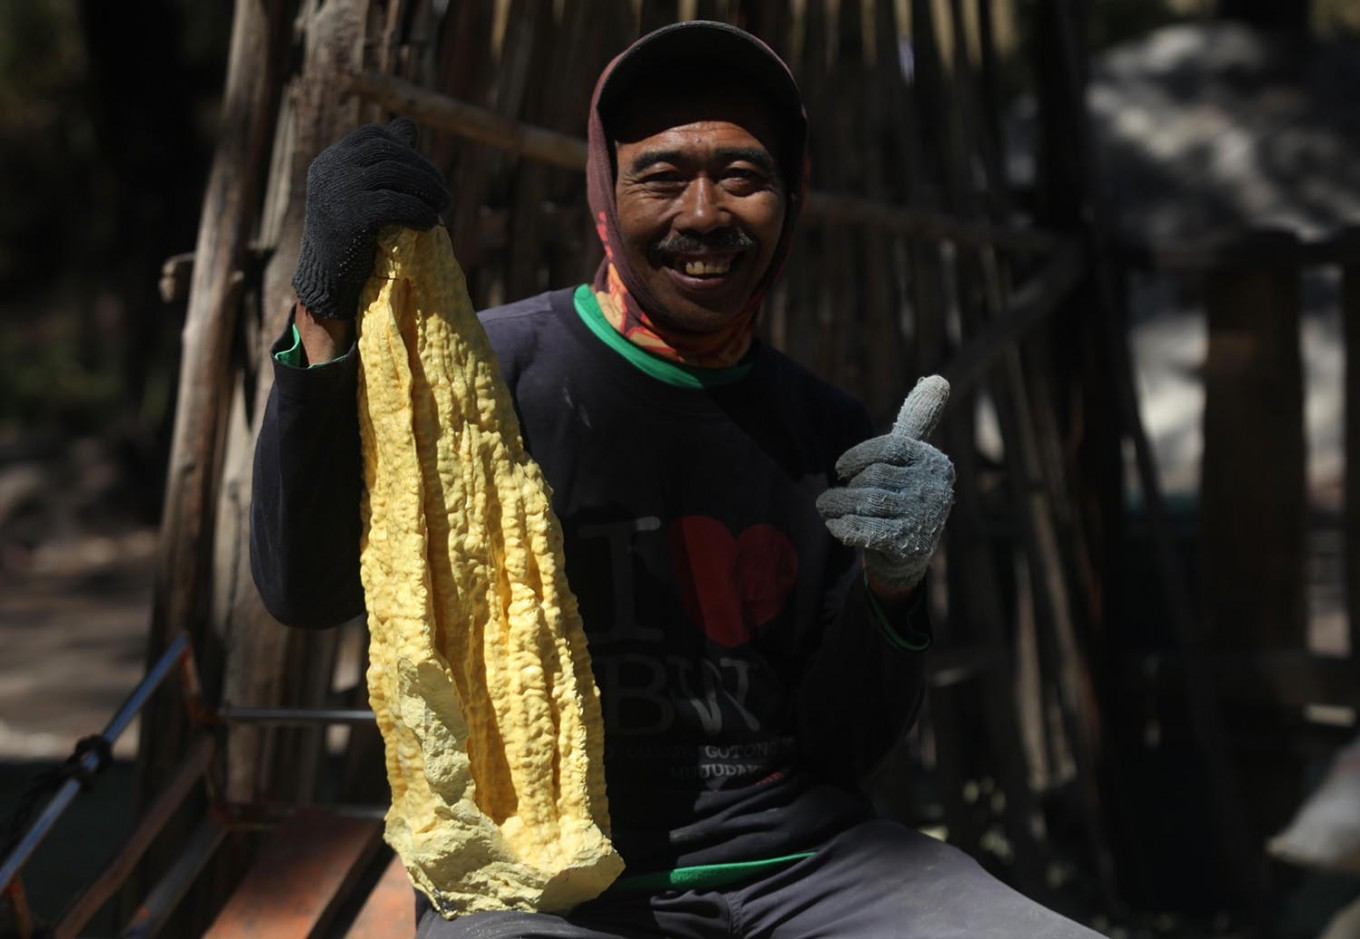 Matri, a miner, displays the sulfur he mined from Ijen Crater. JP/Boy T Harjanto